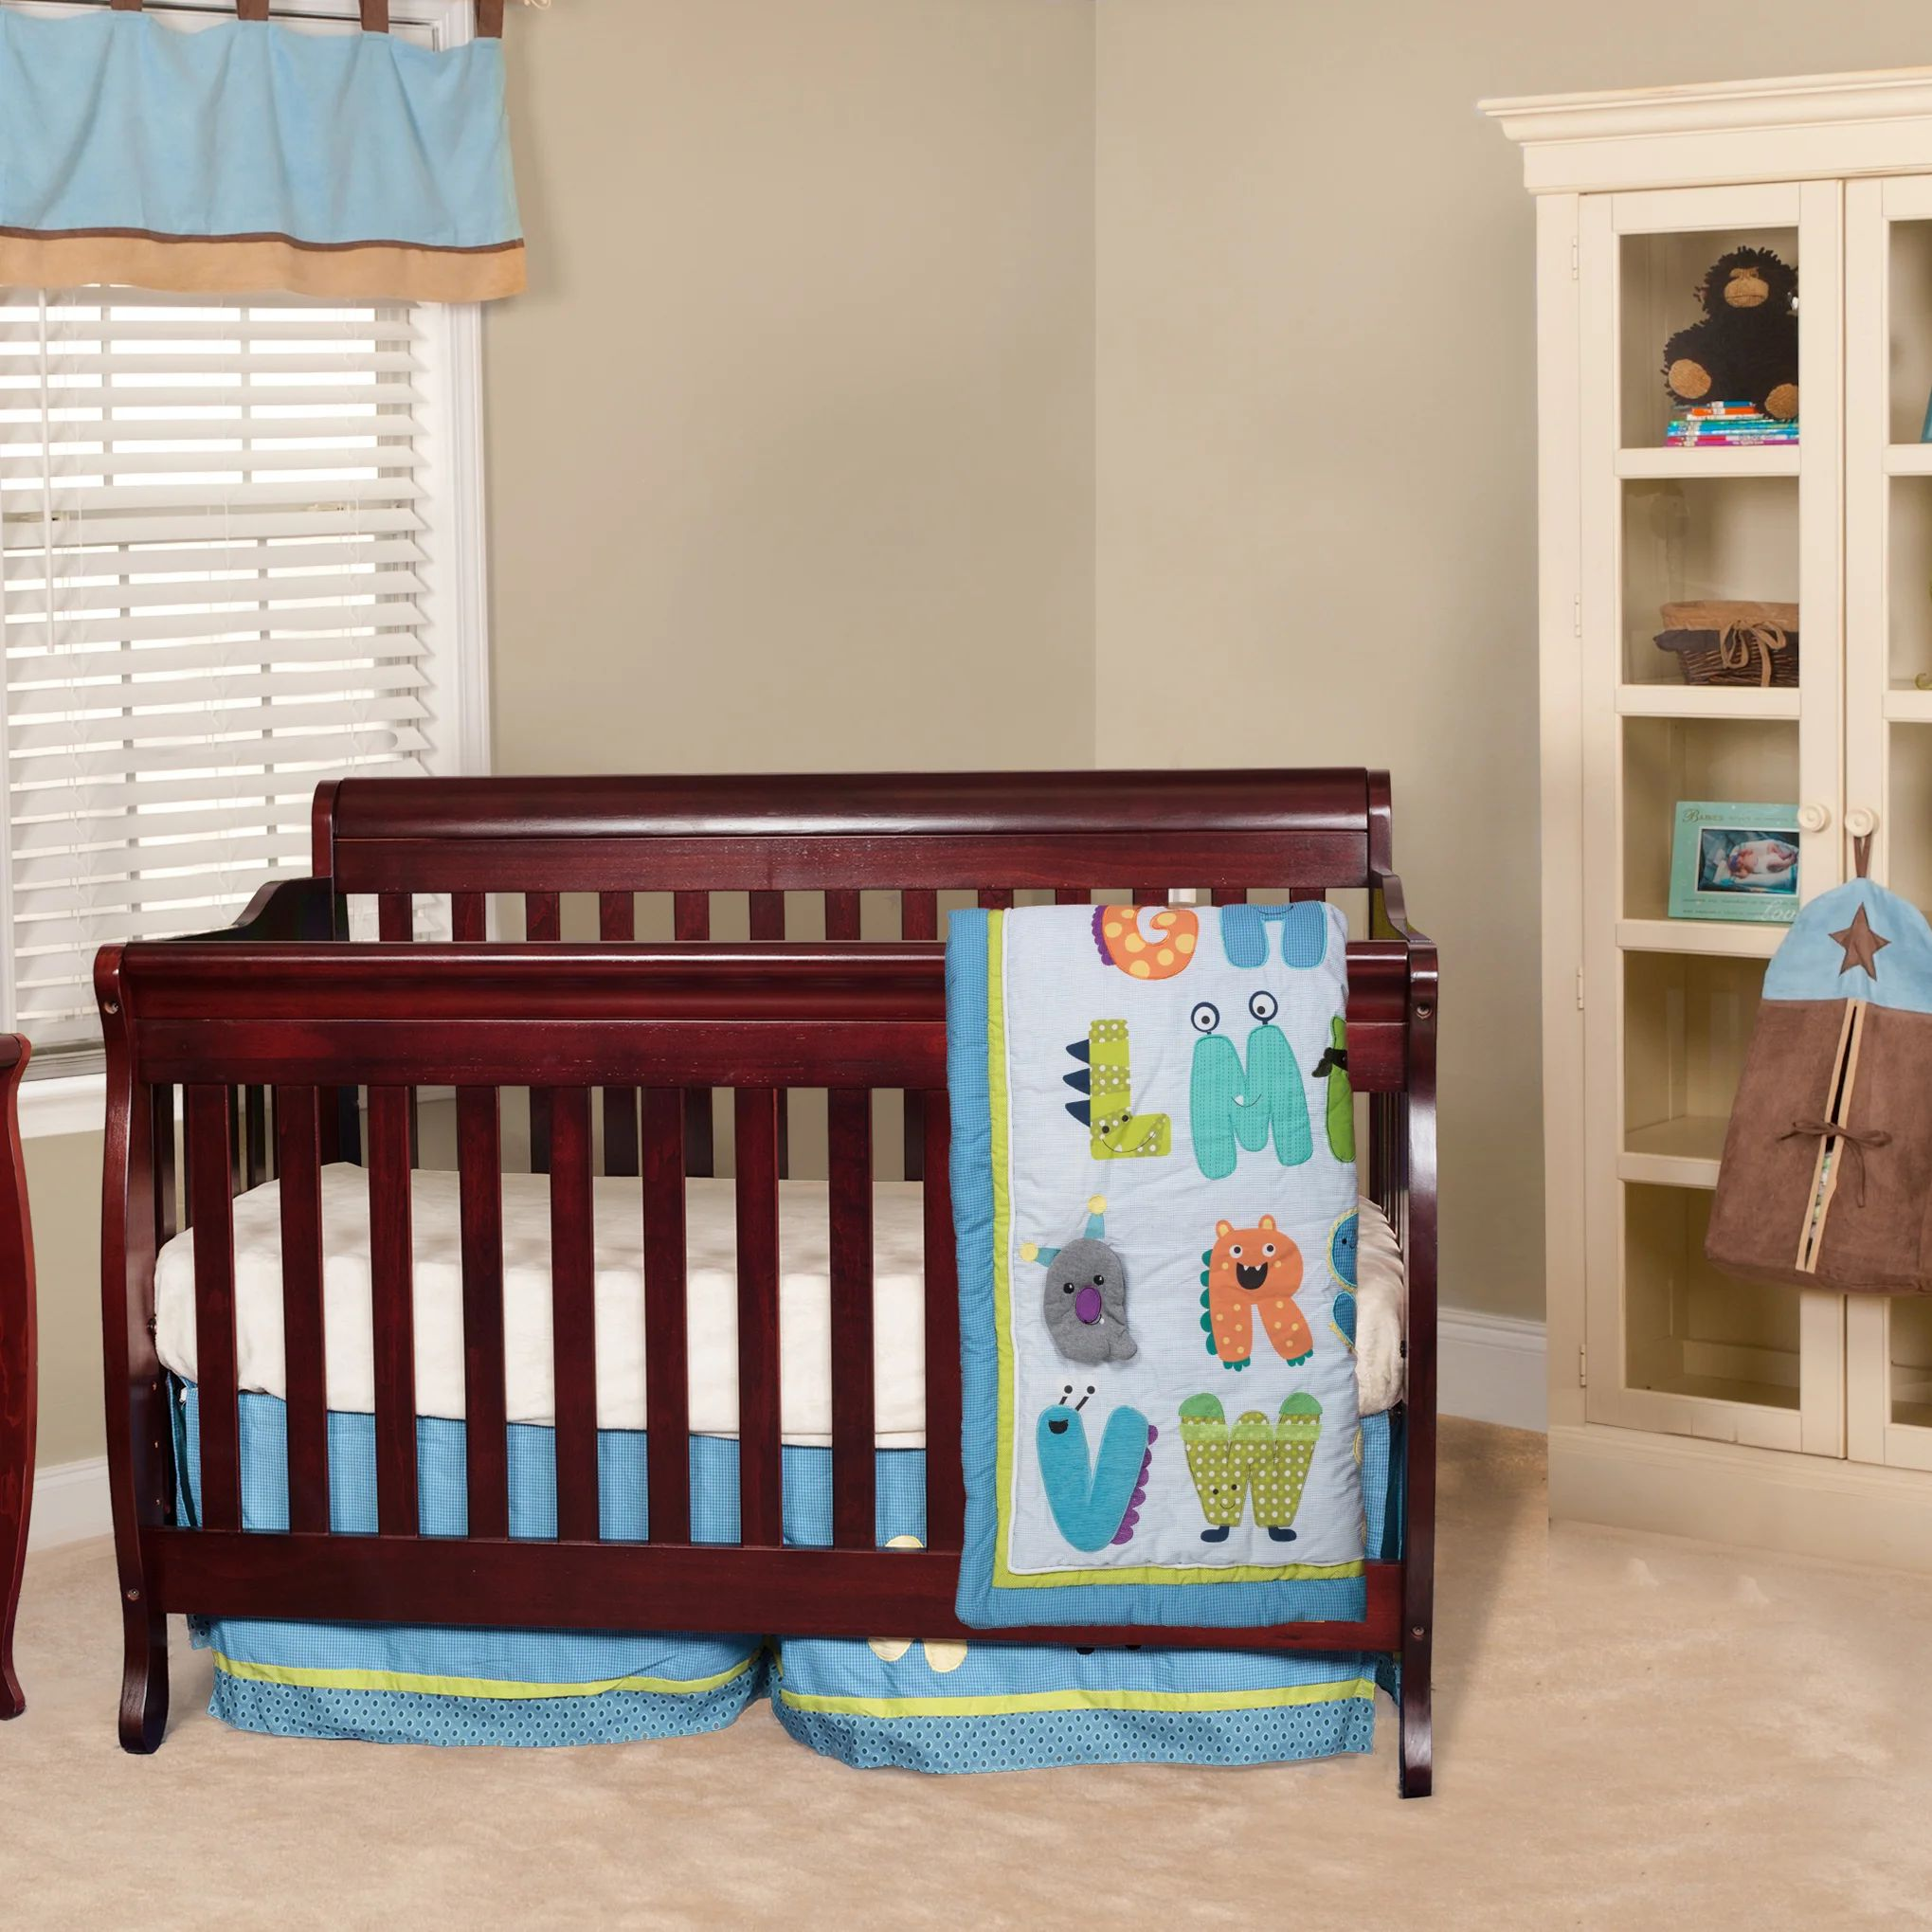 Crib for sale in palm bay fl afg baby furniture alice grace 2 piece convertible